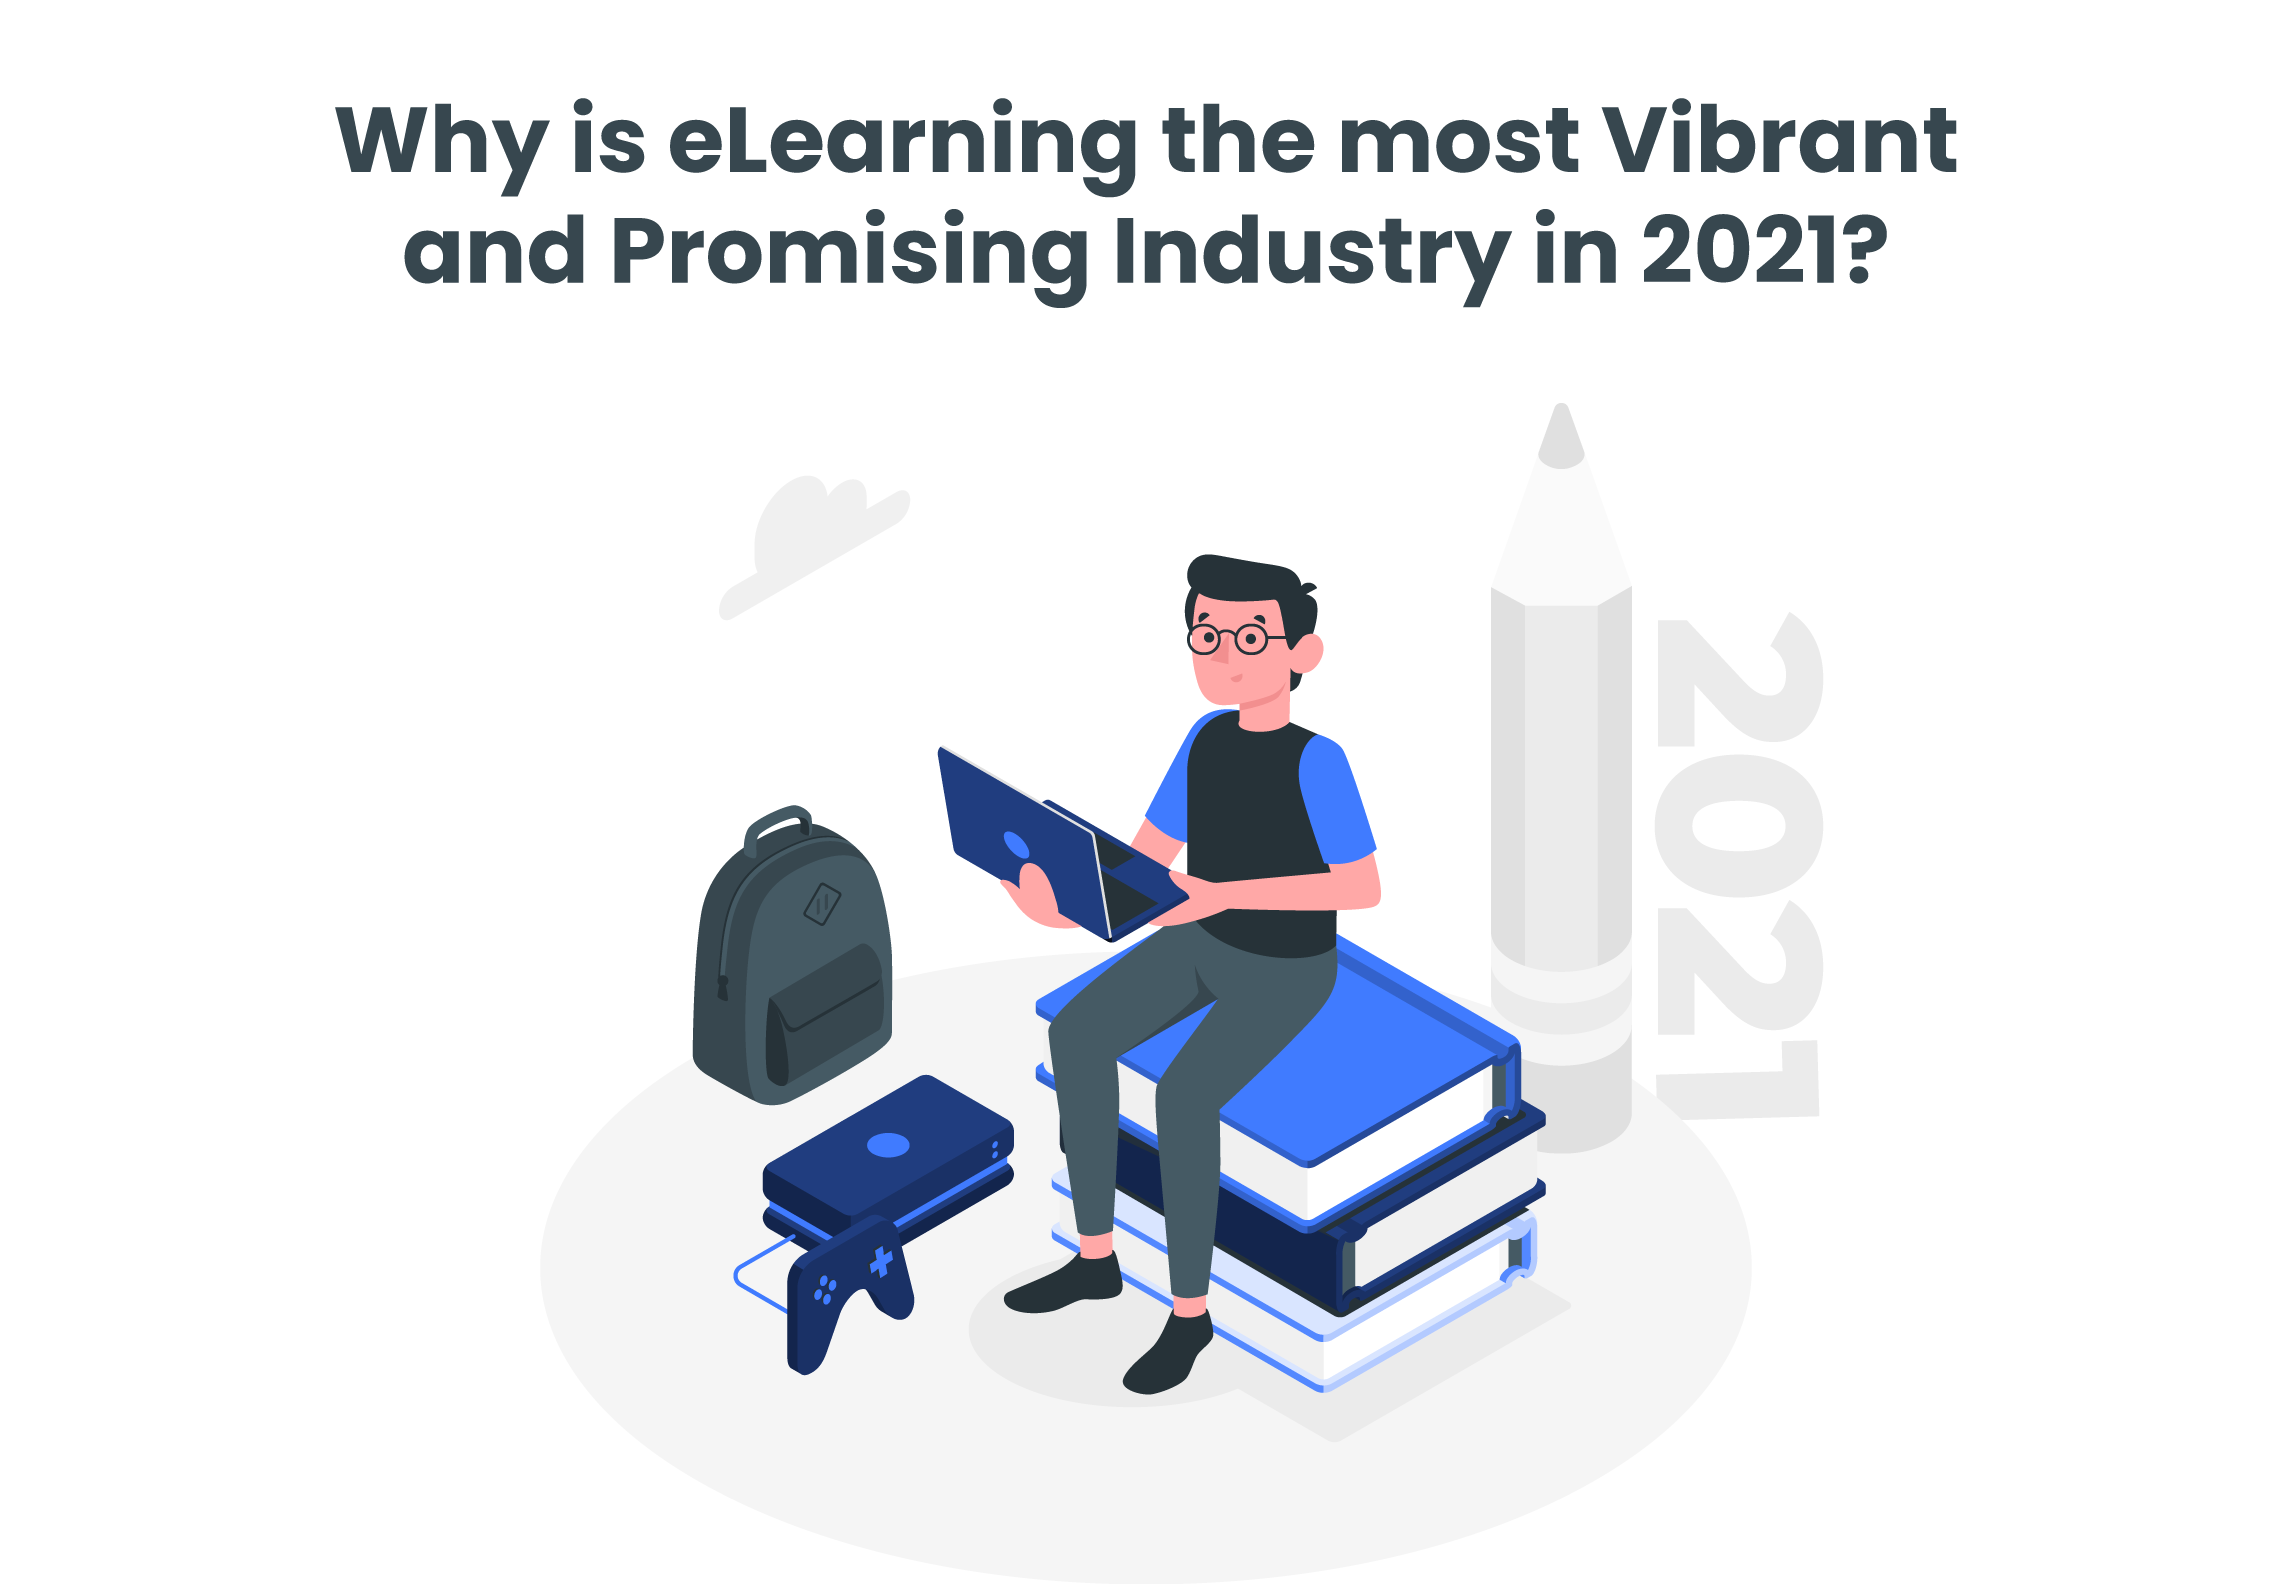 Why is eLearning the most Vibrant and Promising Industry in 2021?